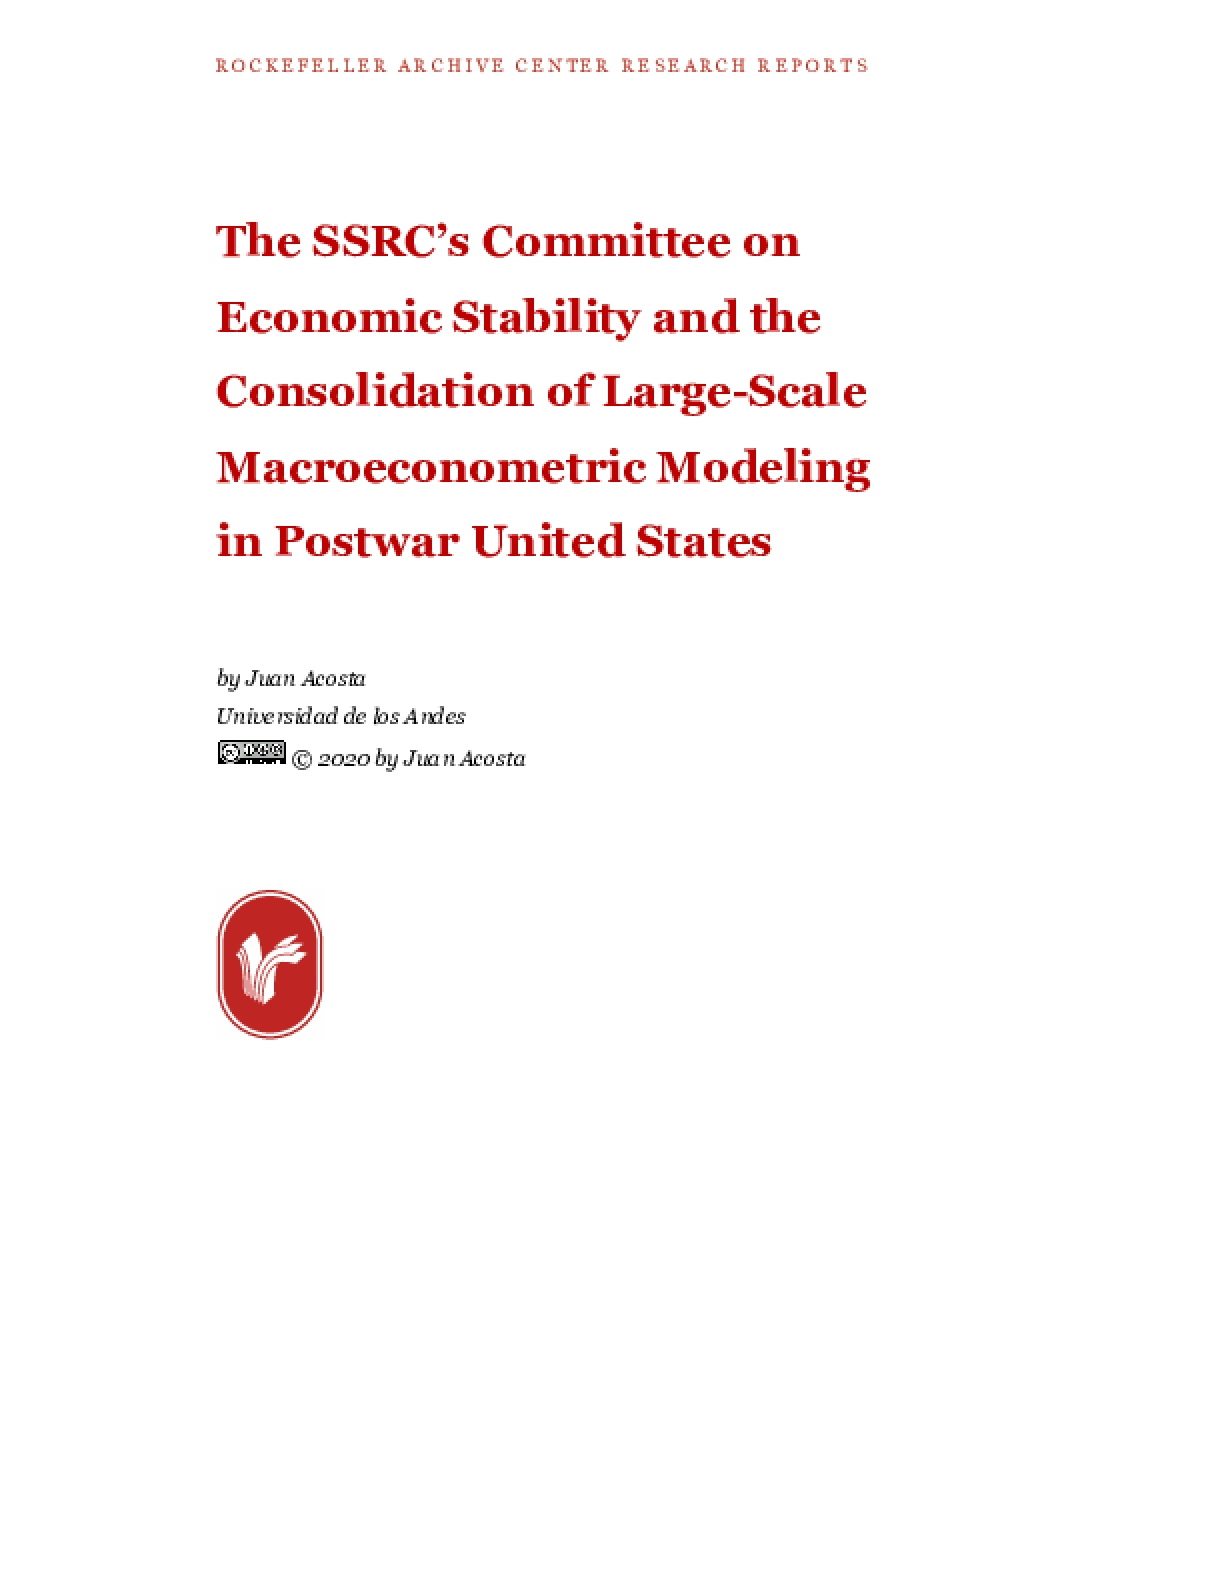 The SSRC's Committee on Economic Stability and the Consolidation of Large-Scale Macroeconometric Modeling in Postwar United States